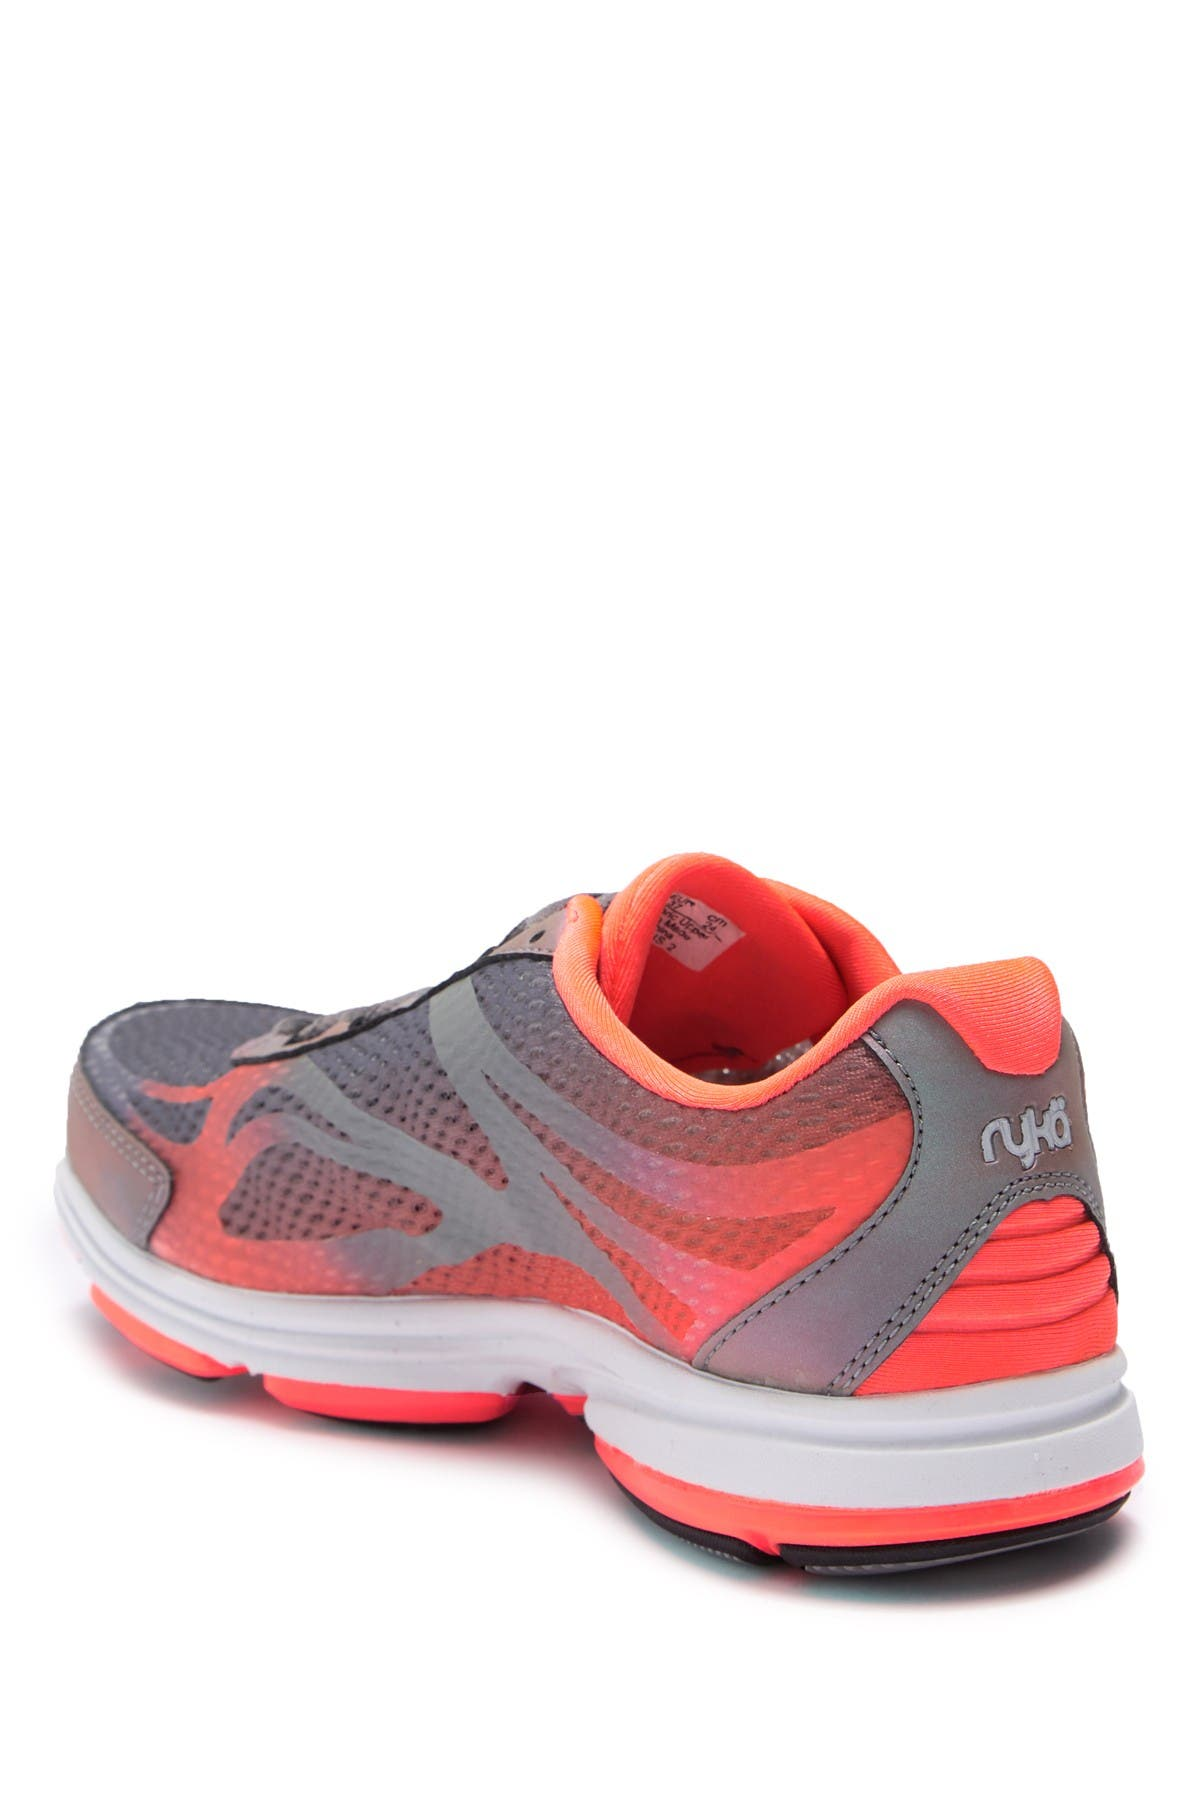 Image of Ryka Devo Plus 2 Walking Sneaker - Wide Width Available